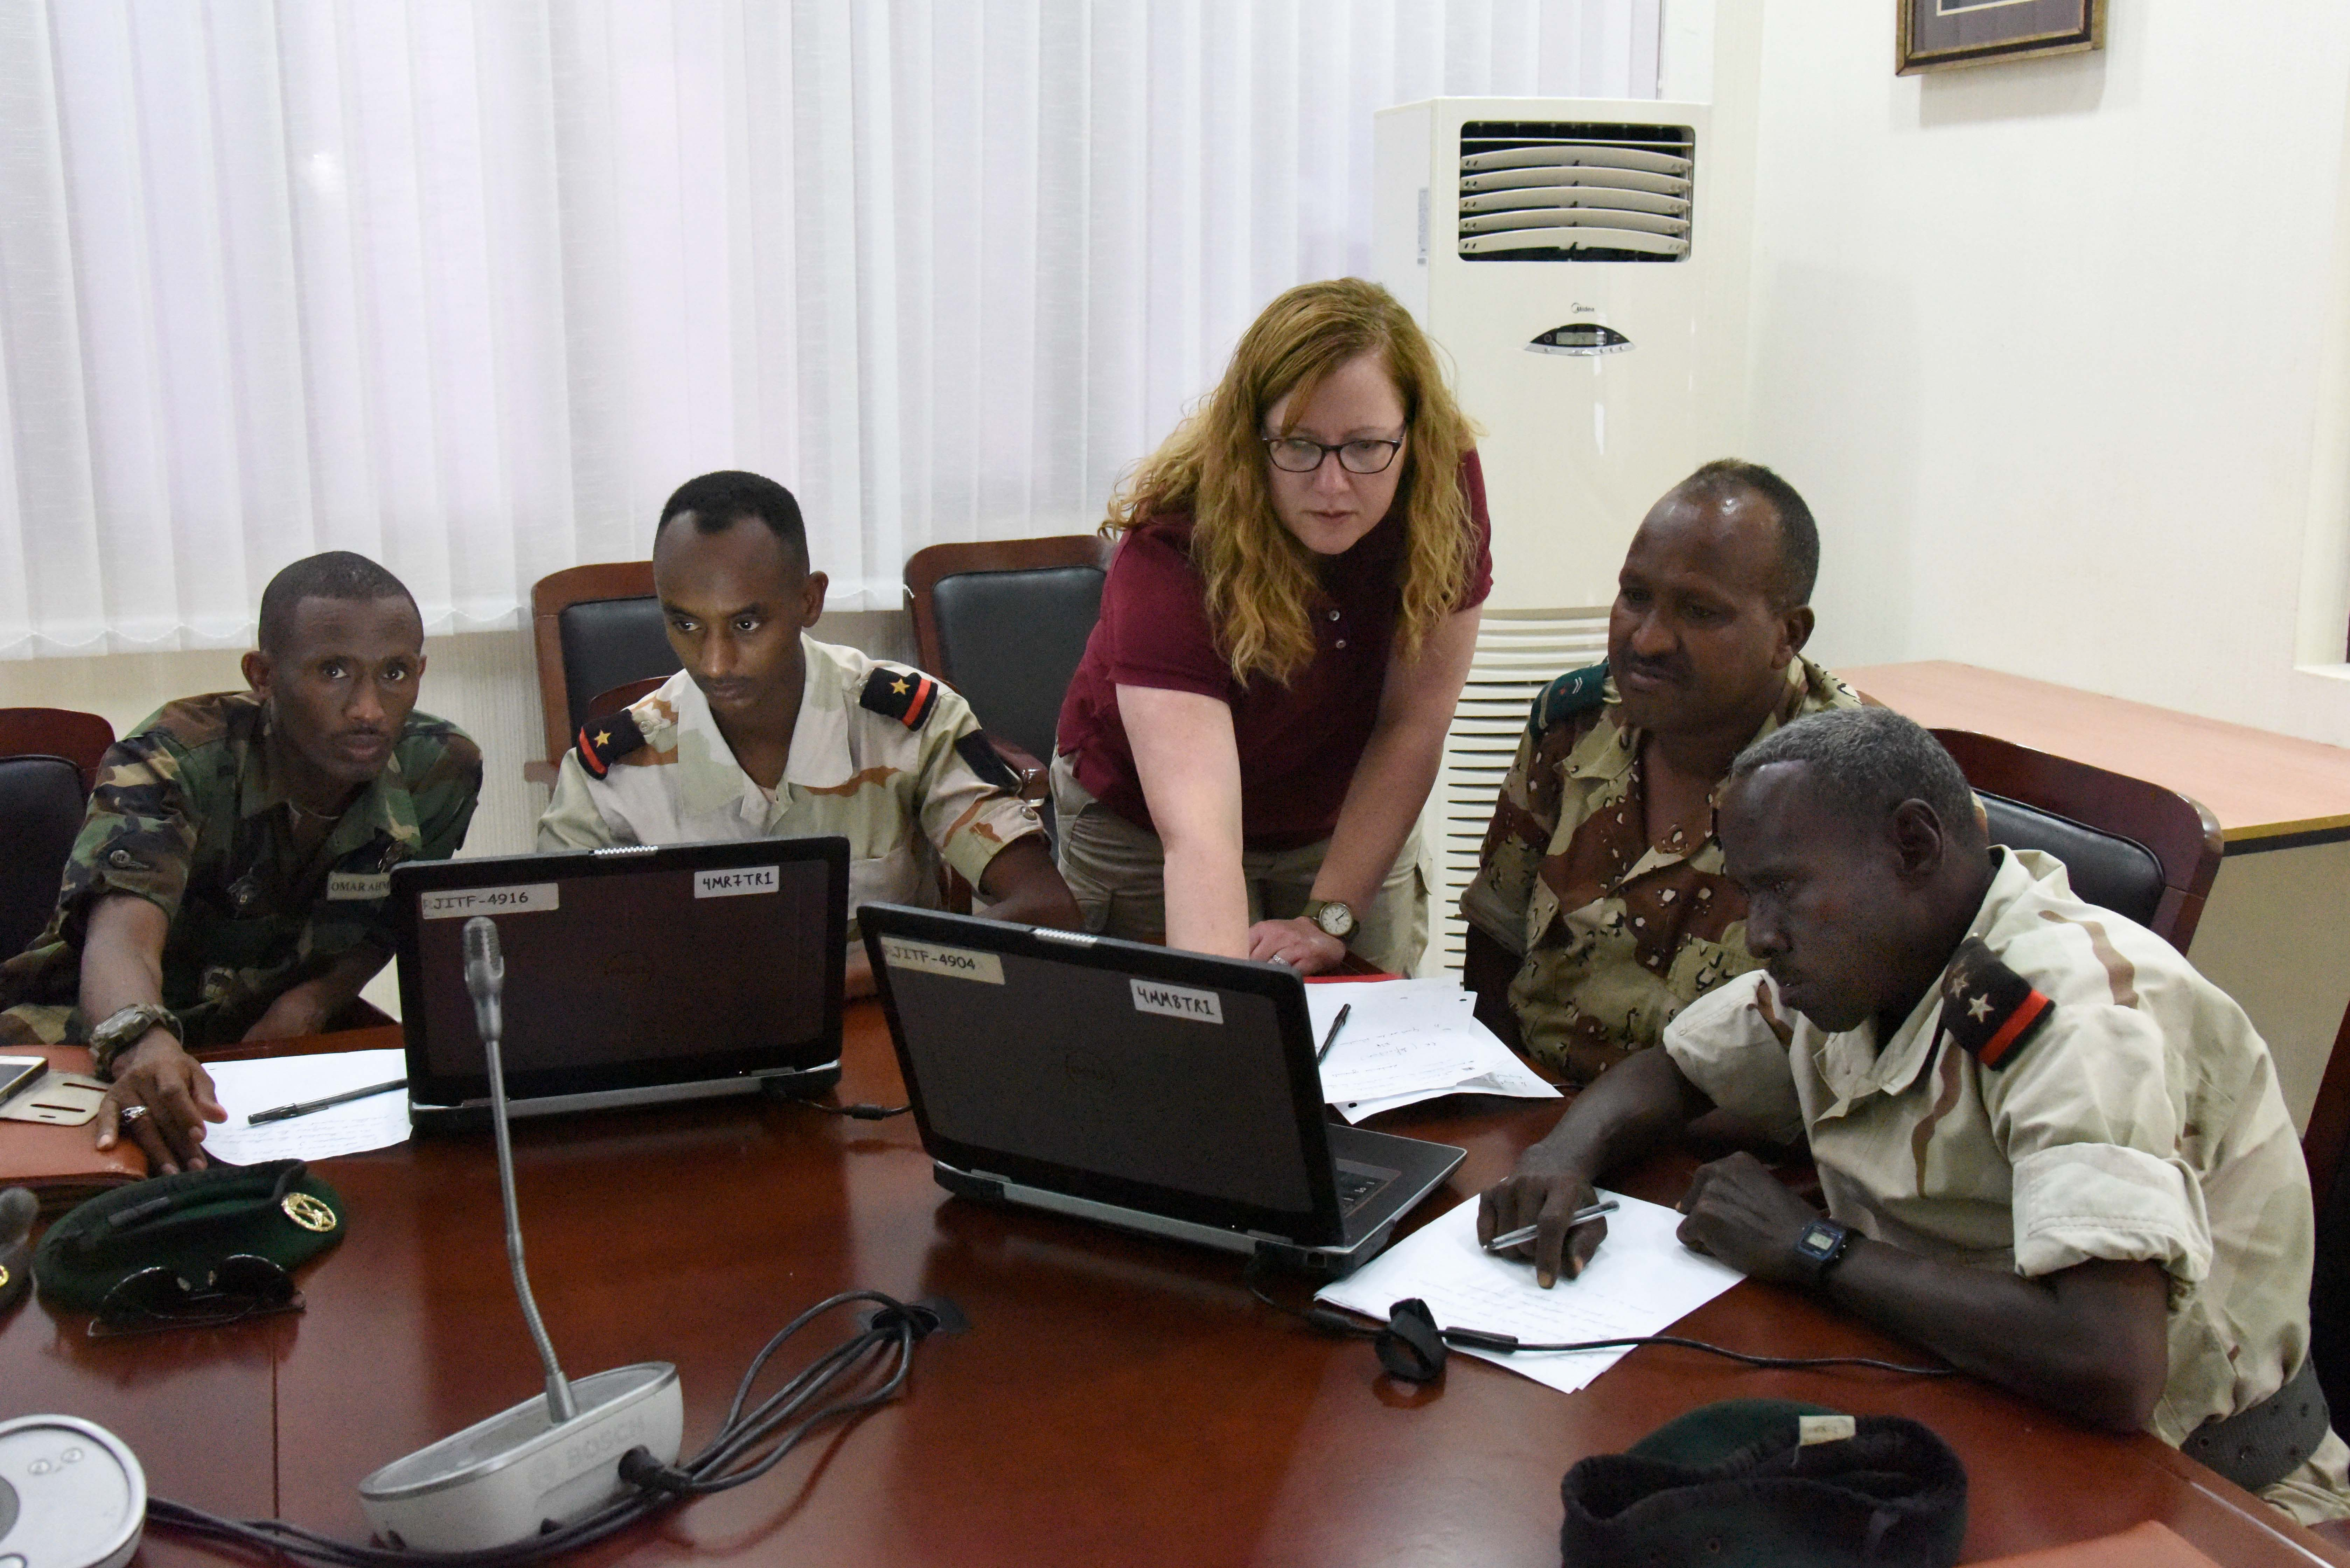 Cynthia, Regional Joint Intel Training Facility (RJITF) instructor from Royal Air Force Molesworth, U.K., points out source information to Djiboutian Armed Forces members during an open source intelligence course at the People's Palace, Djibouti, March 5-10, 2016. The course introduced students to finding different sources, how to validate those sources and risk assessments. (U.S. Air Force photo by Staff Sgt. Victoria Sneed)